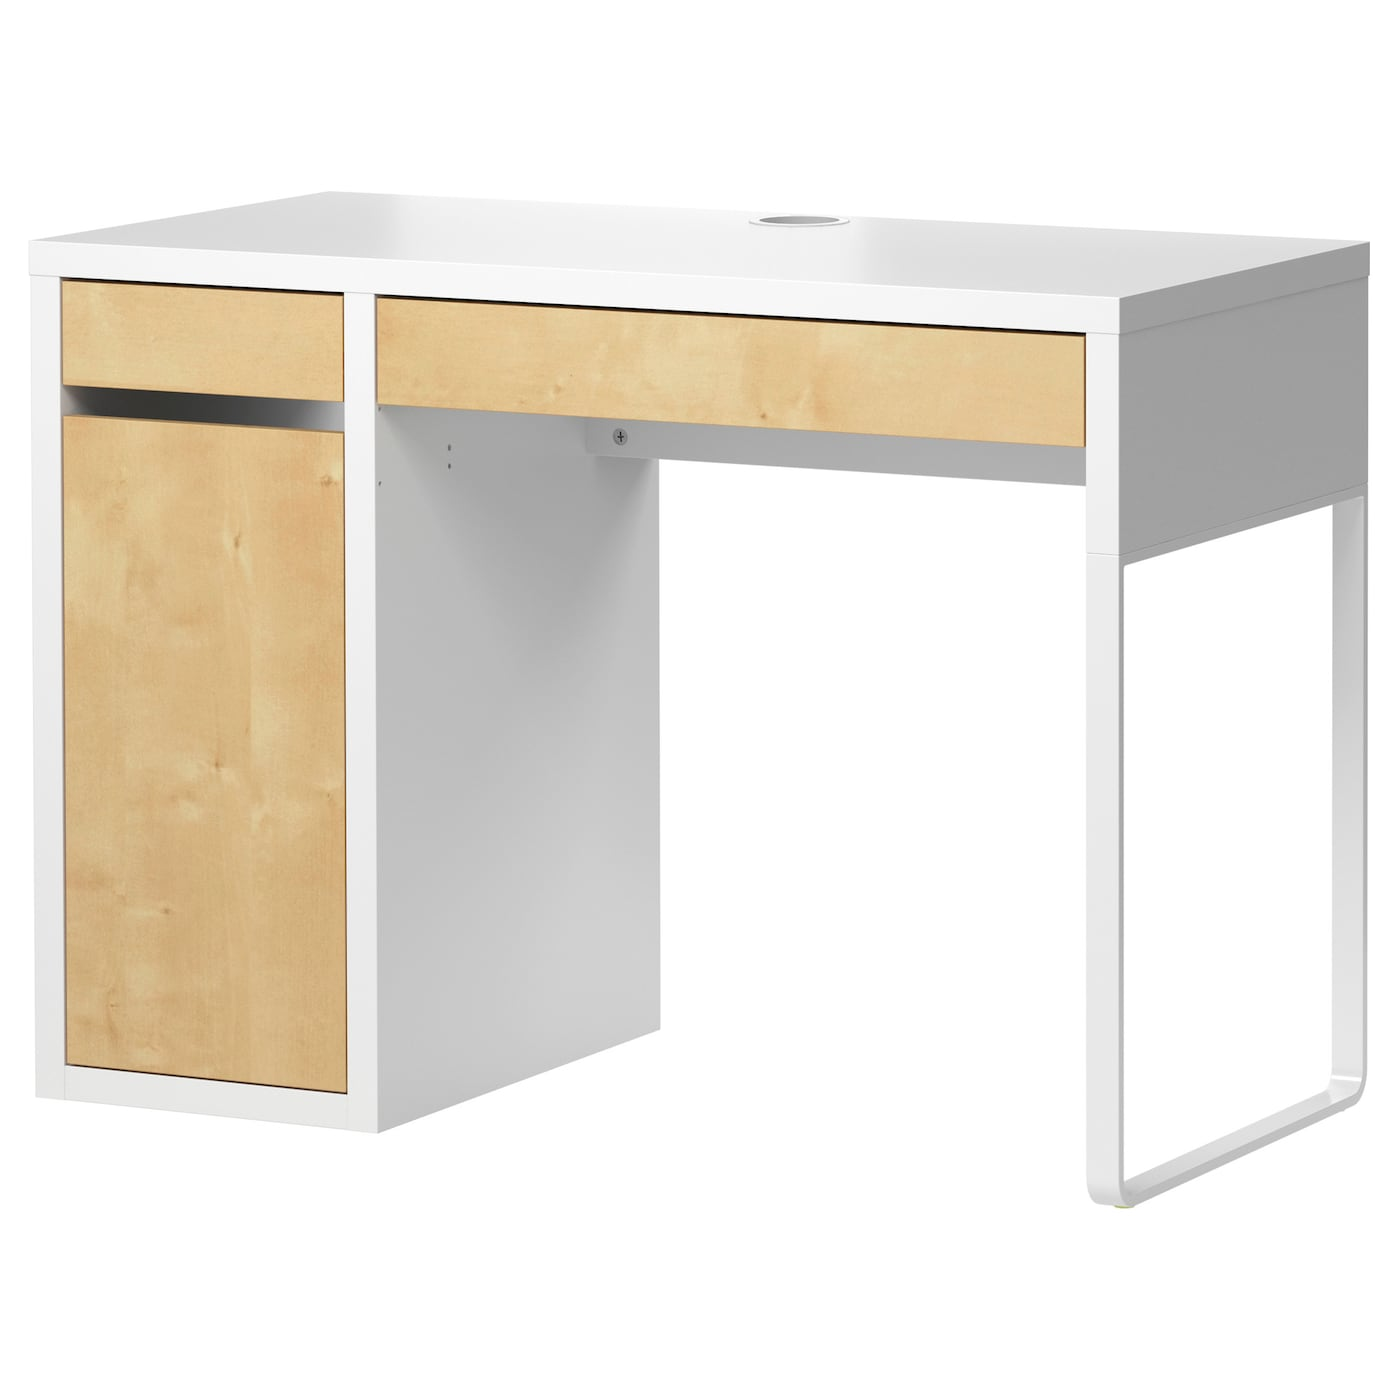 micke bureau blanc motif bouleau 105 x 50 cm ikea. Black Bedroom Furniture Sets. Home Design Ideas